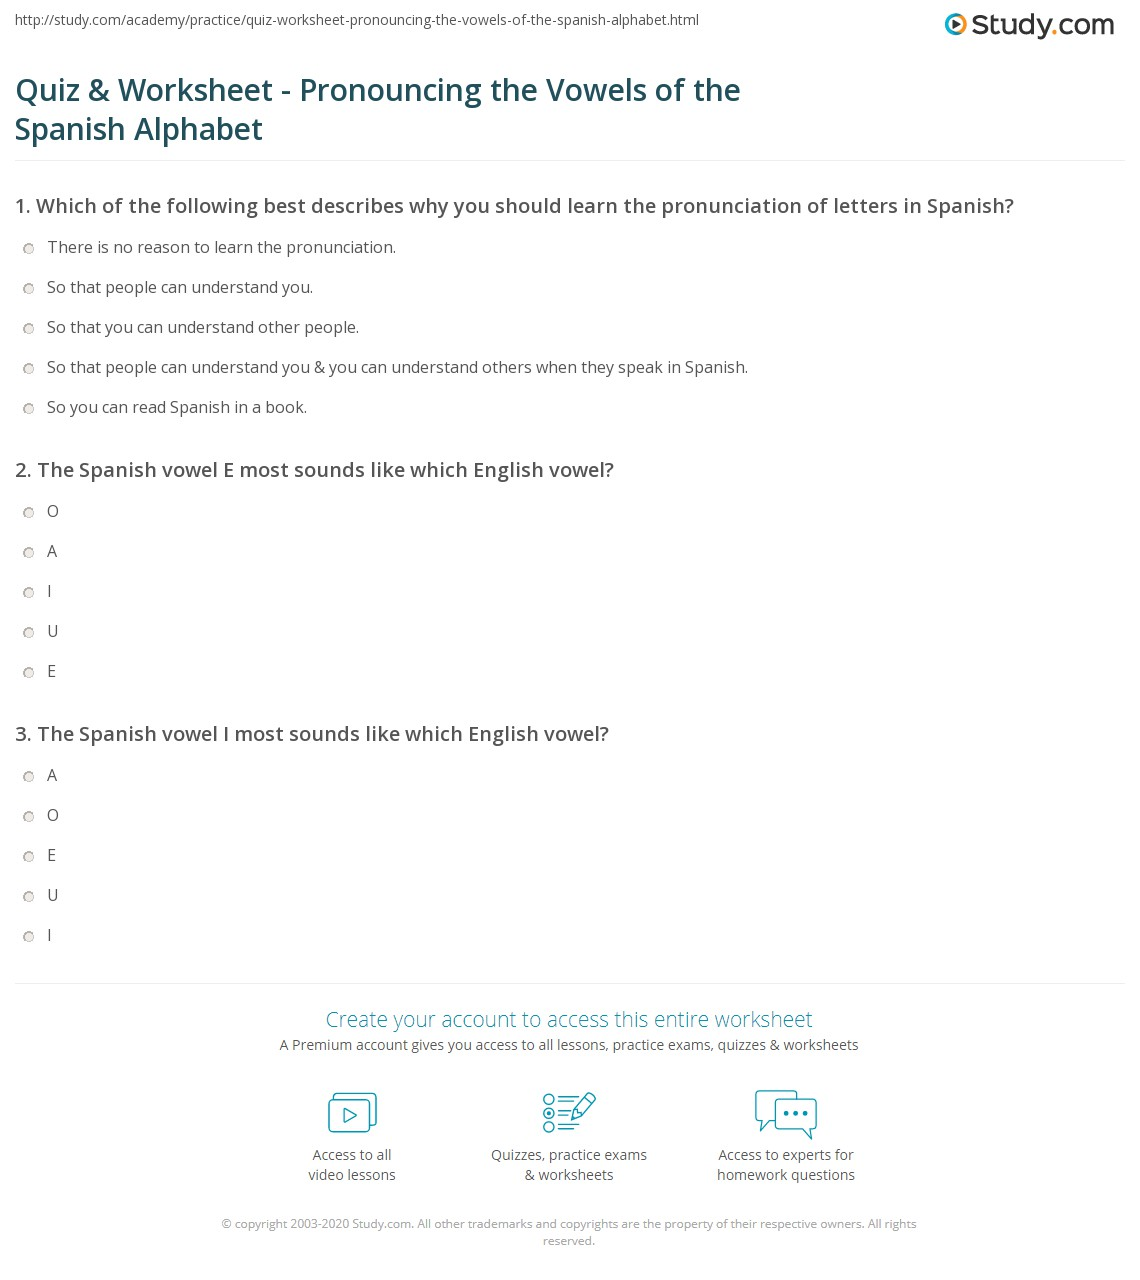 Quiz & Worksheet - Pronouncing the Vowels of the Spanish